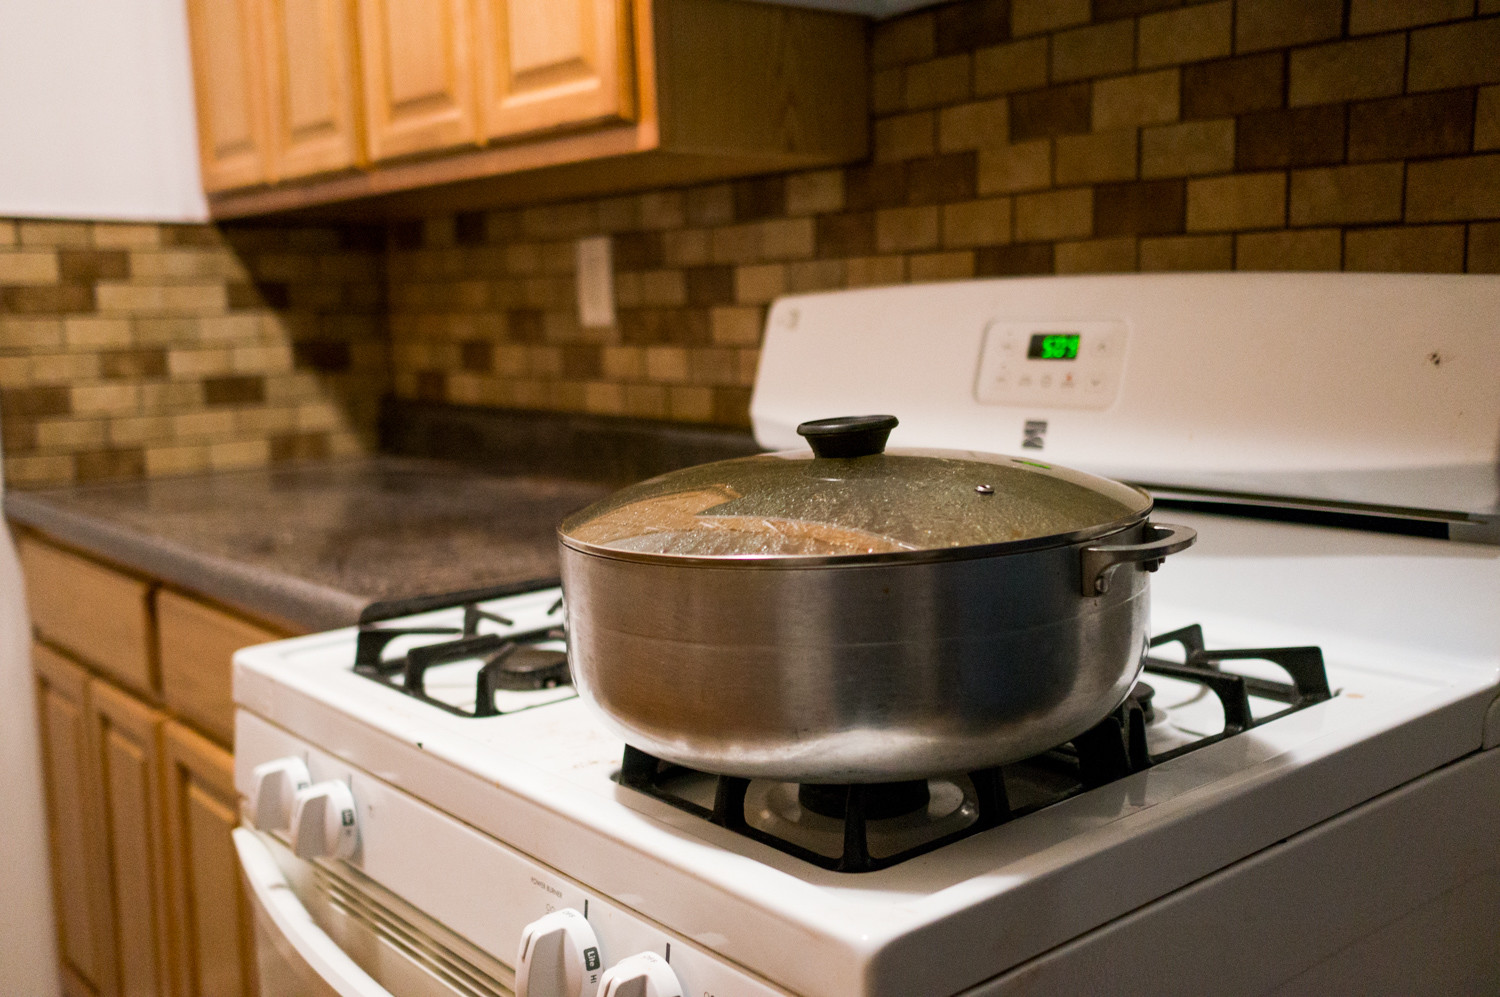 A pot of food rests on a stove in the newly renovated kitchen of an apartment at 3115 Sedgwick Avenue.